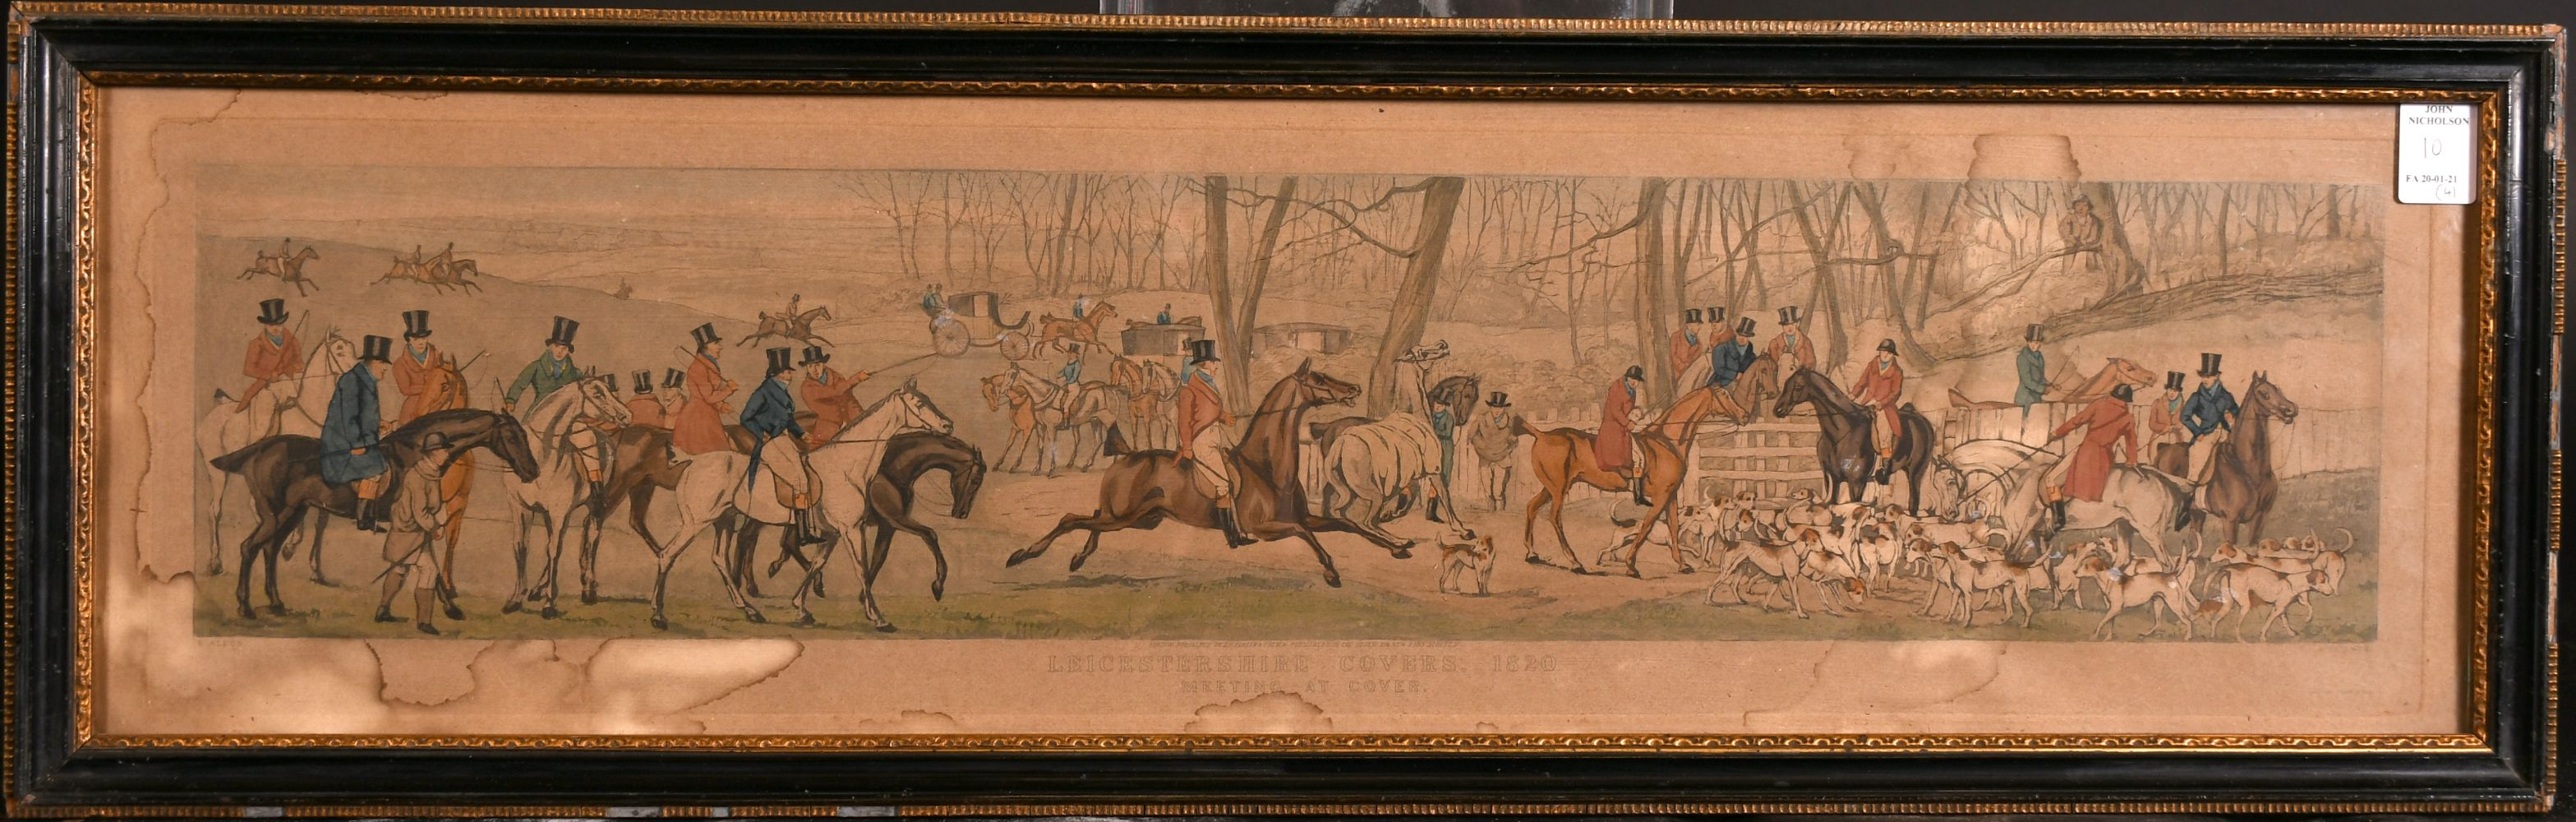 """After H. Alken, 'Leicestershire covers 1820' a set of four hunting prints, each 5"""" x 23.5"""". - Image 2 of 5"""